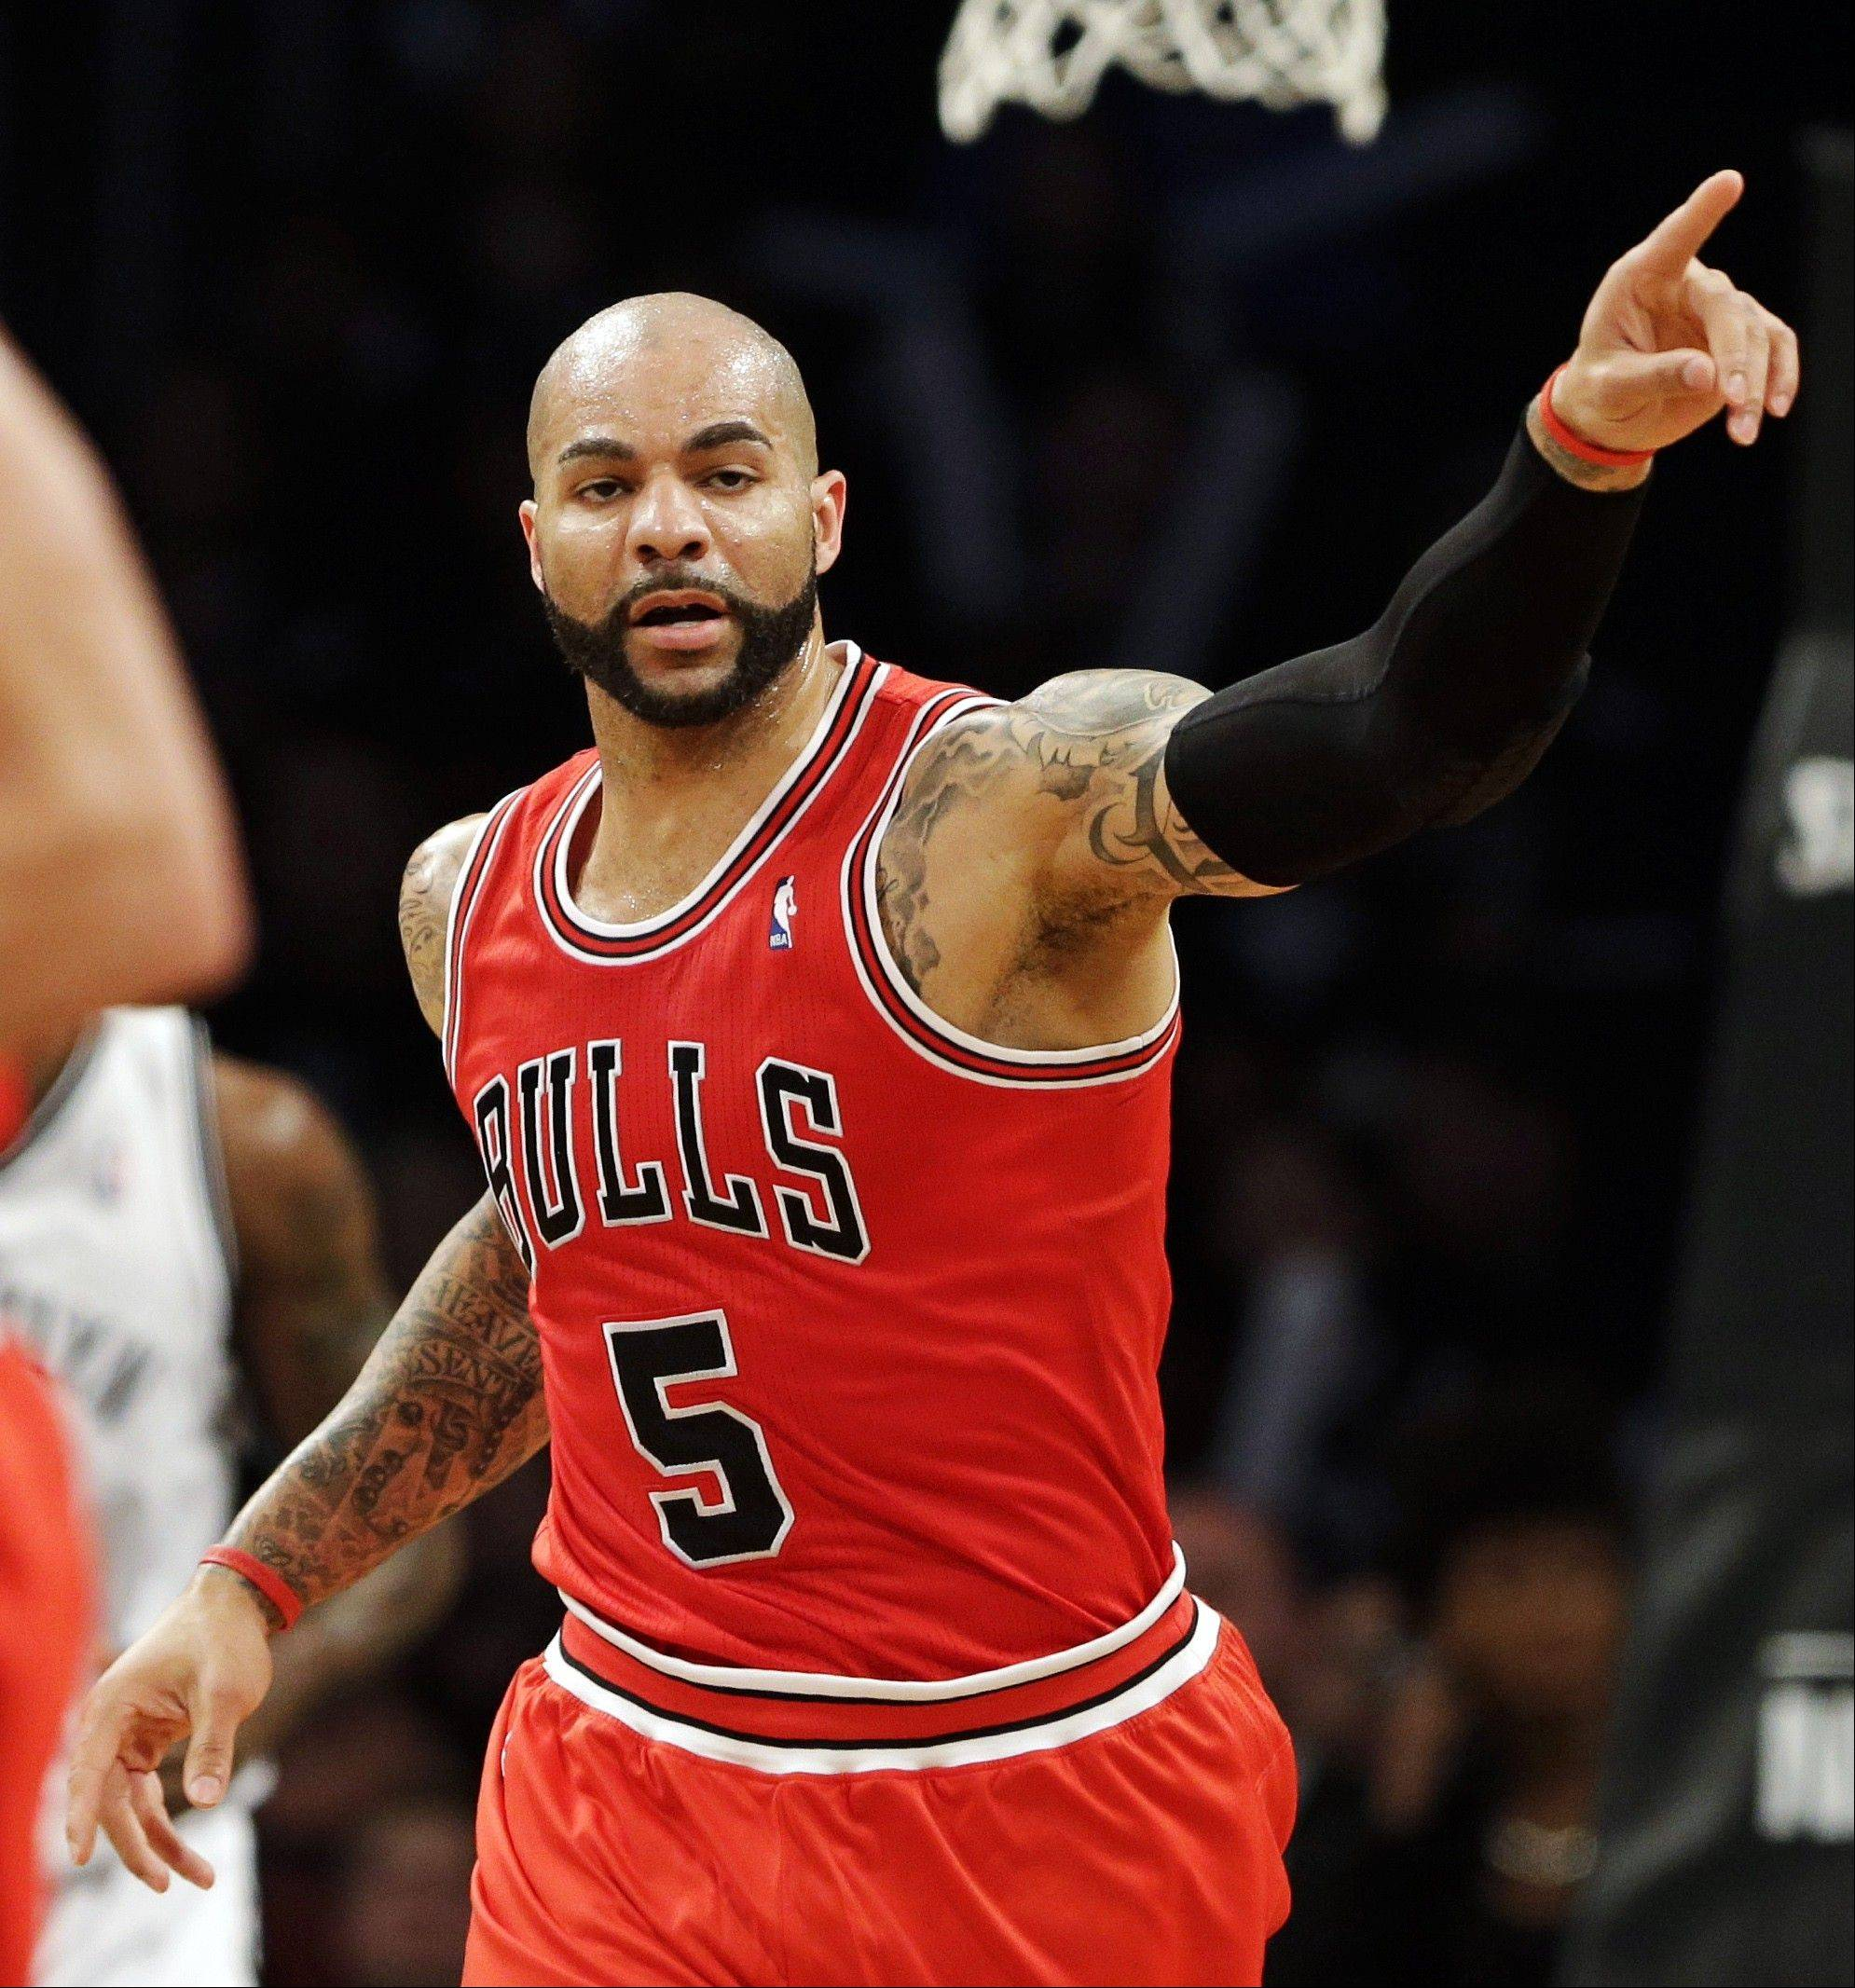 Chicago Bulls forward Carlos Boozer celebrates scoring against the Brooklyn Nets during the first half in Game 7 of their first-round NBA basketball playoff series in New York, Saturday, May 4, 2013.